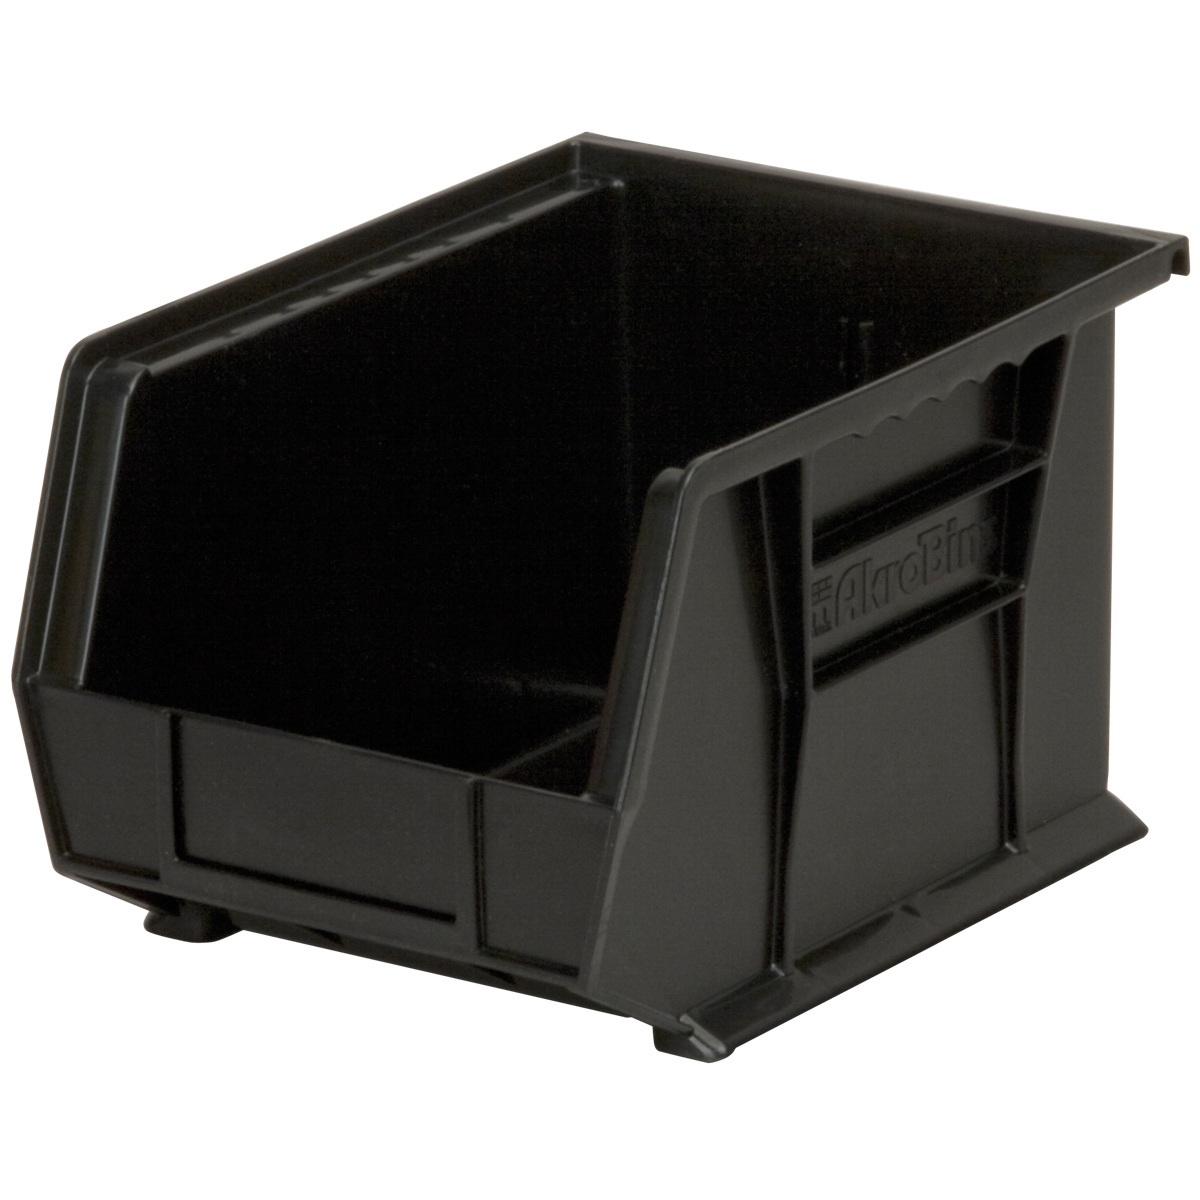 AkroBin 10-3/4 x 8-1/4 x 7, Black (30239BLACK).  This item sold in carton quantities of 6.